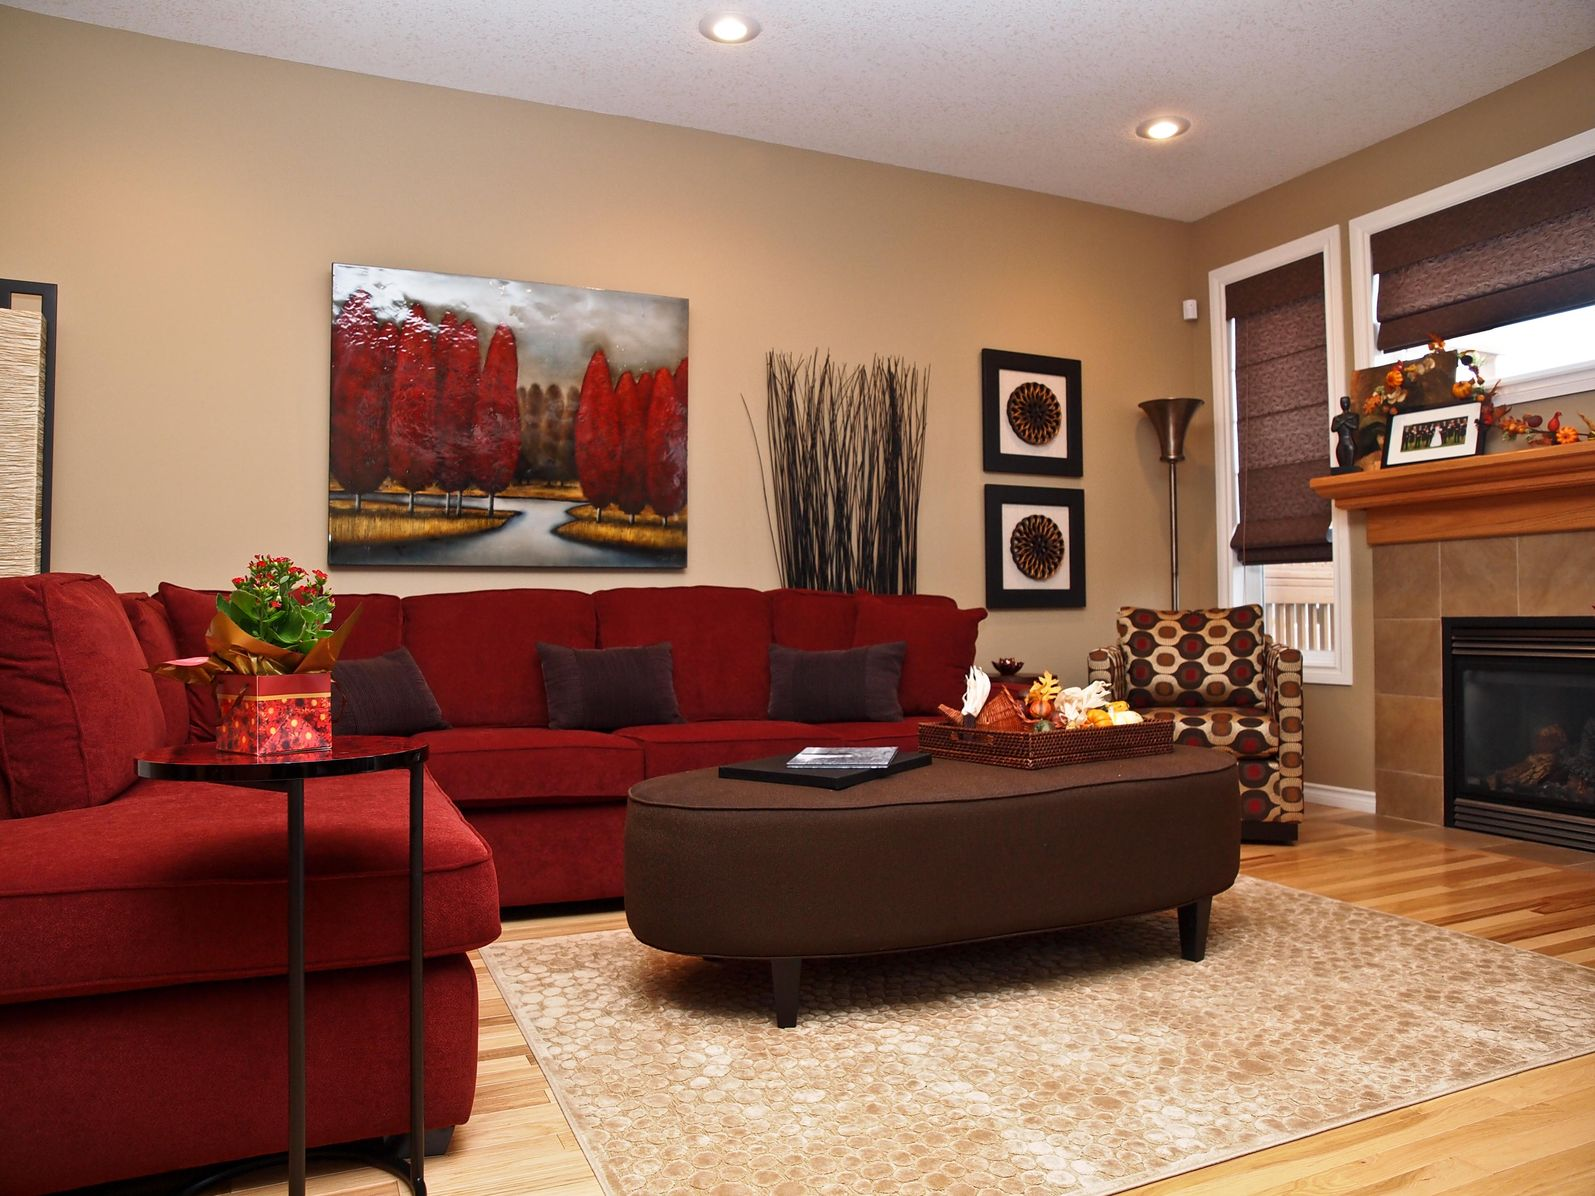 Beautiful living room decor ideas 11